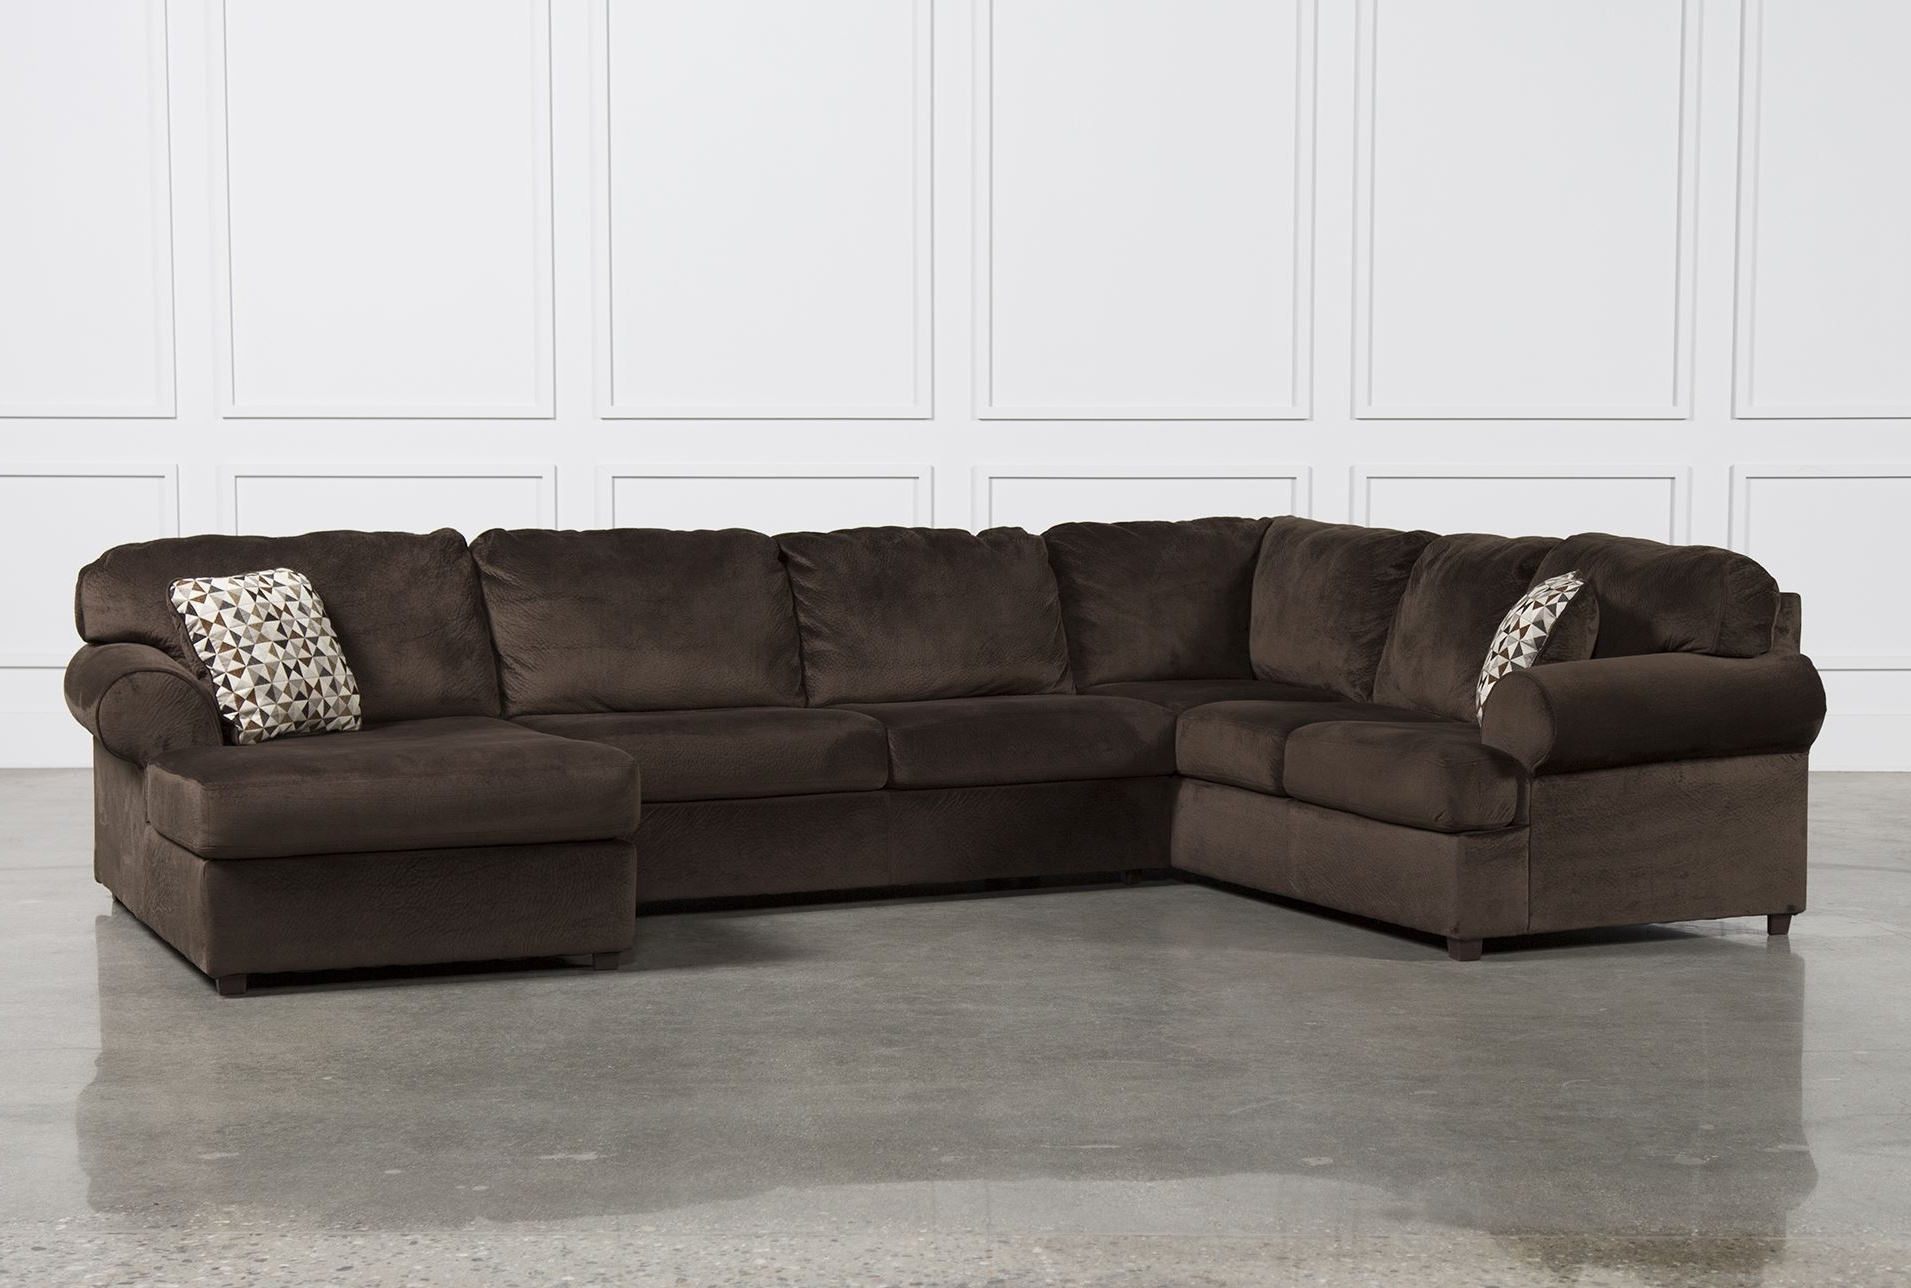 Fashionable 3 Piece Sectional Sleeper Sofas Regarding Astonishing Plush Sectional Sofas 48 On Sectional Sleeper Sofa For (View 11 of 20)